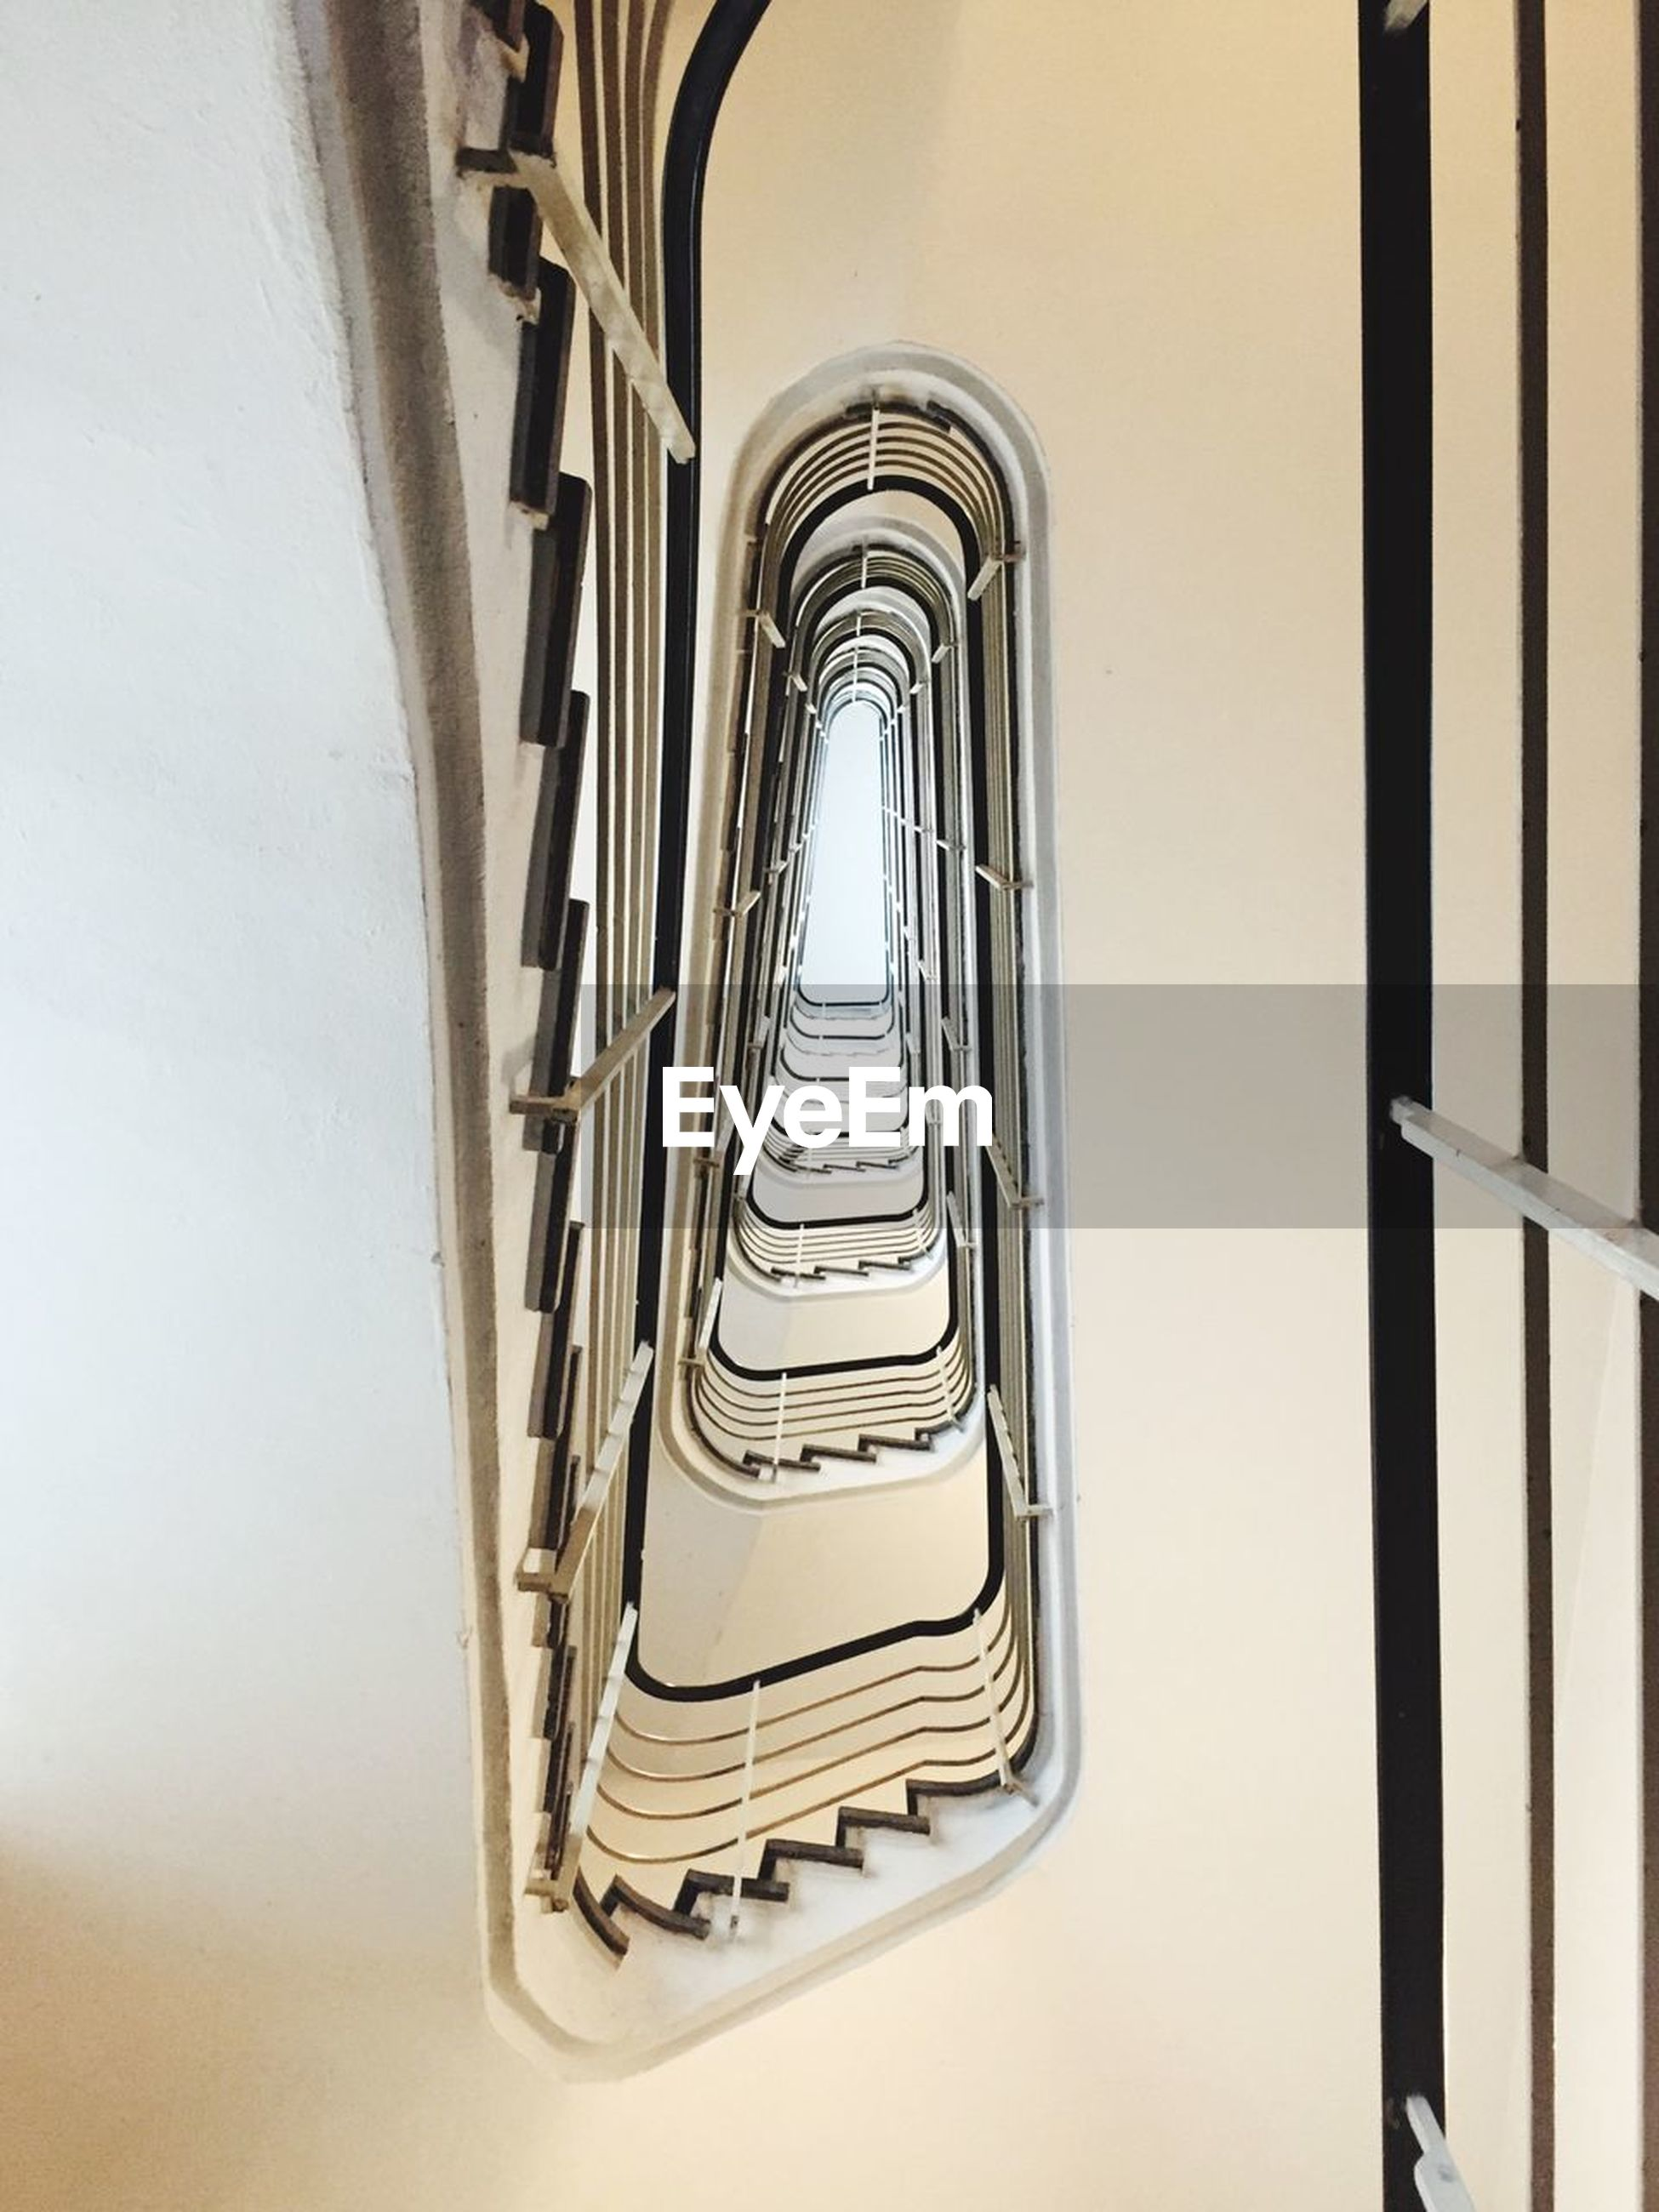 architecture, built structure, railing, indoors, no people, staircase, steps and staircases, day, building, low angle view, spiral, in a row, diminishing perspective, metal, spiral staircase, directly below, window, the way forward, pattern, repetition